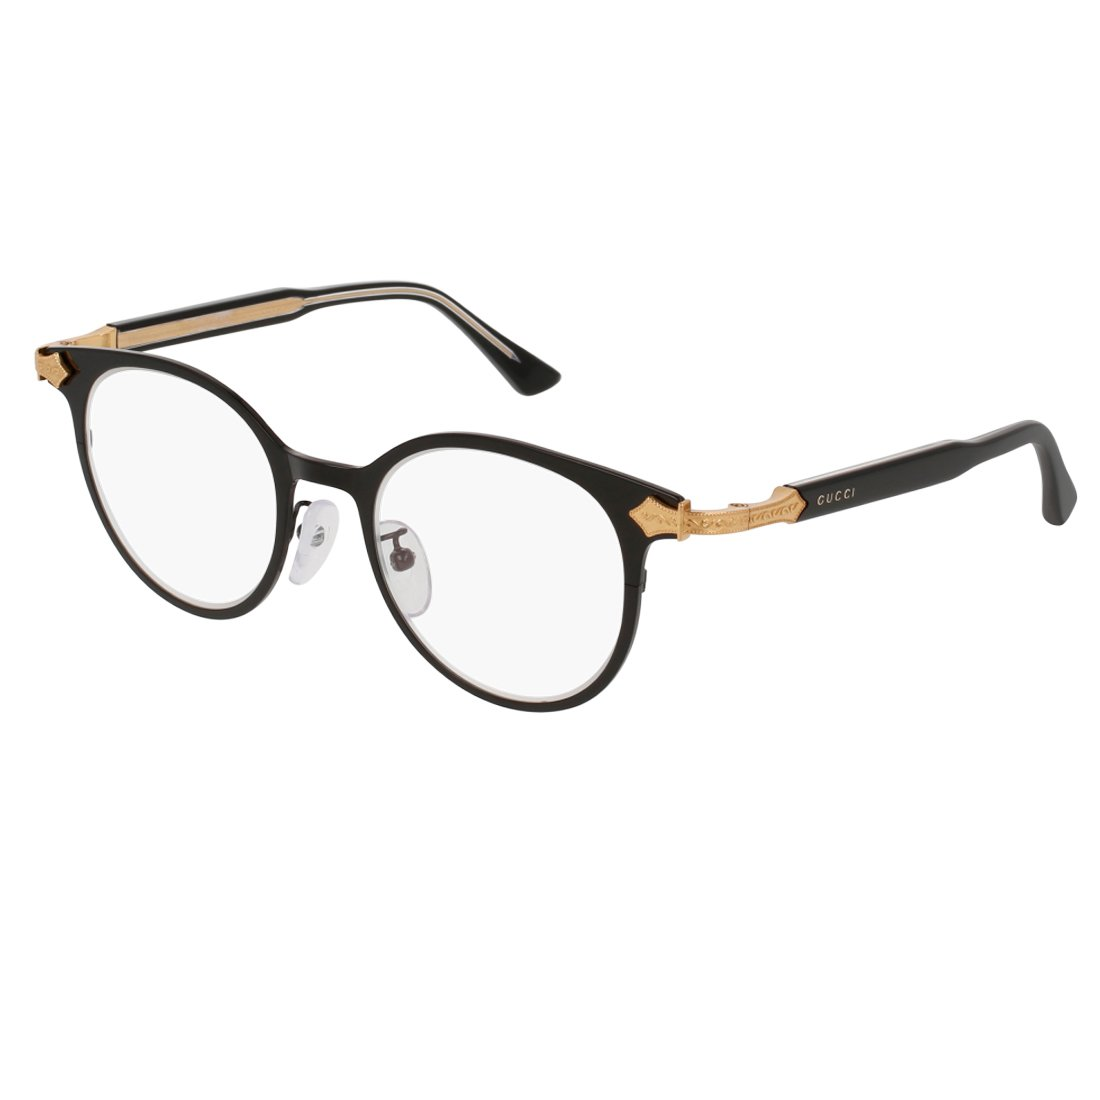 Gucci GG 0068O 001 Black Gold Titanium Round Eyeglasses 49mm by Gucci